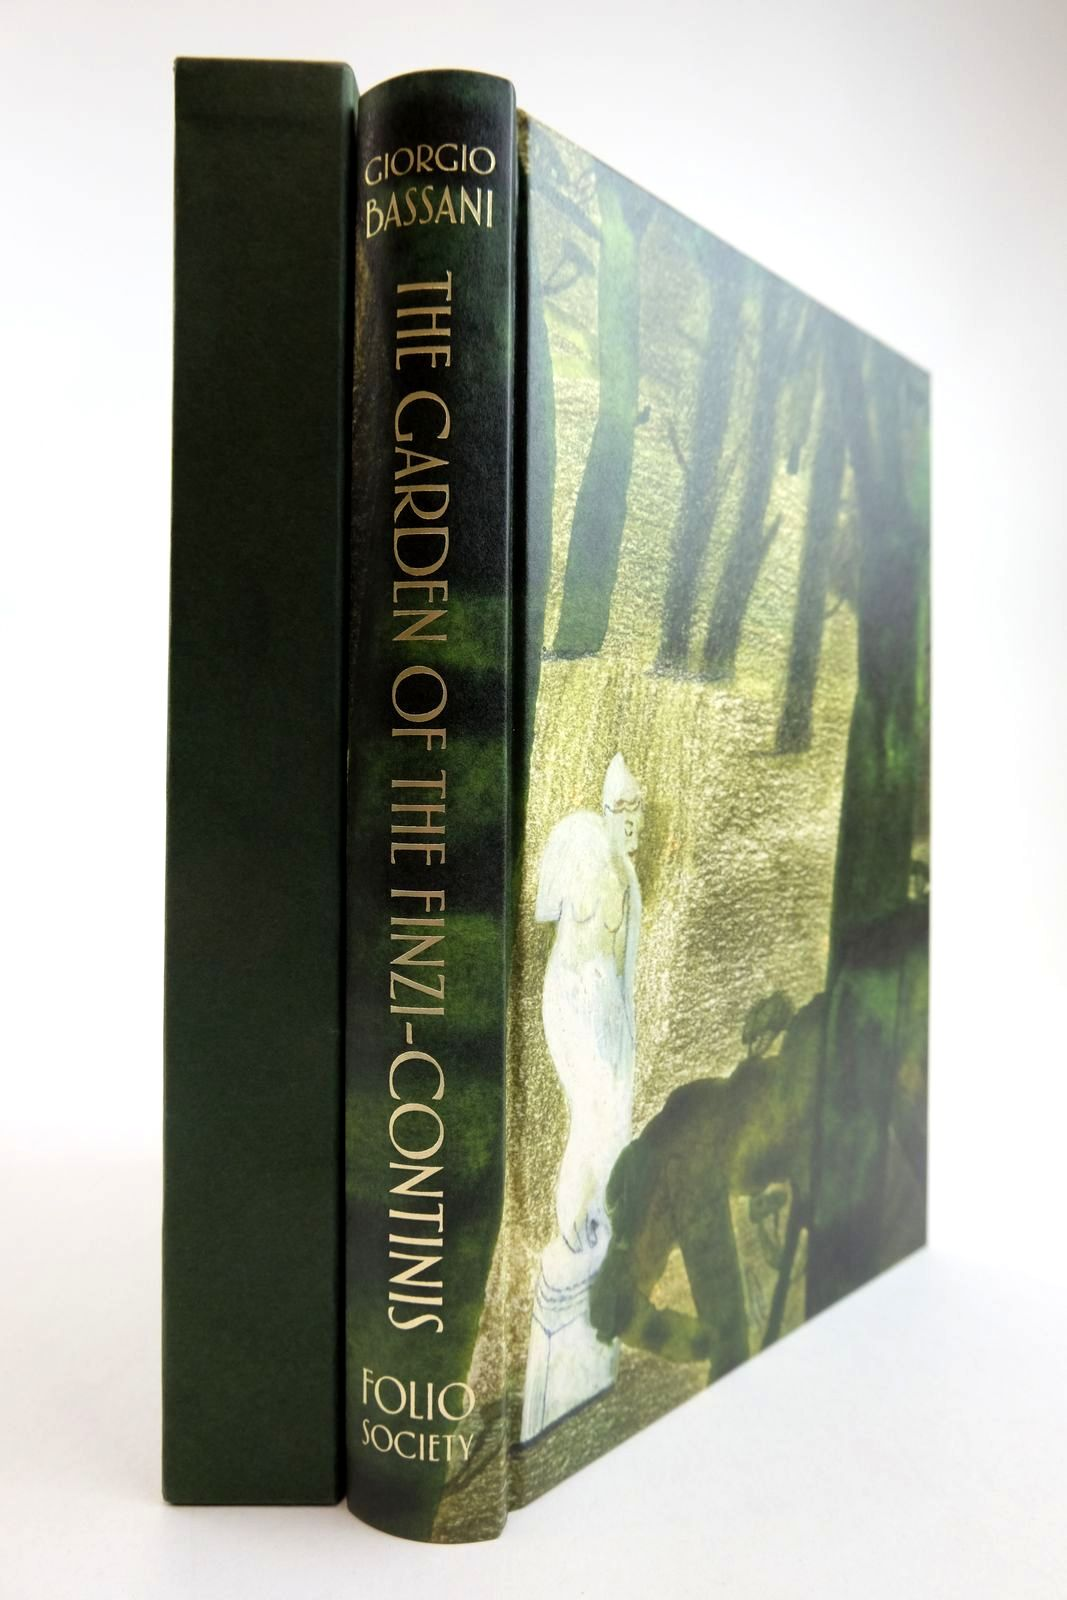 Photo of THE GARDEN OF THE FINZI-CONTINIS written by Bassani, Giorgio McKendrick, Jamie Mawer, Simon illustrated by Carlin, Laura published by Folio Society (STOCK CODE: 2134244)  for sale by Stella & Rose's Books